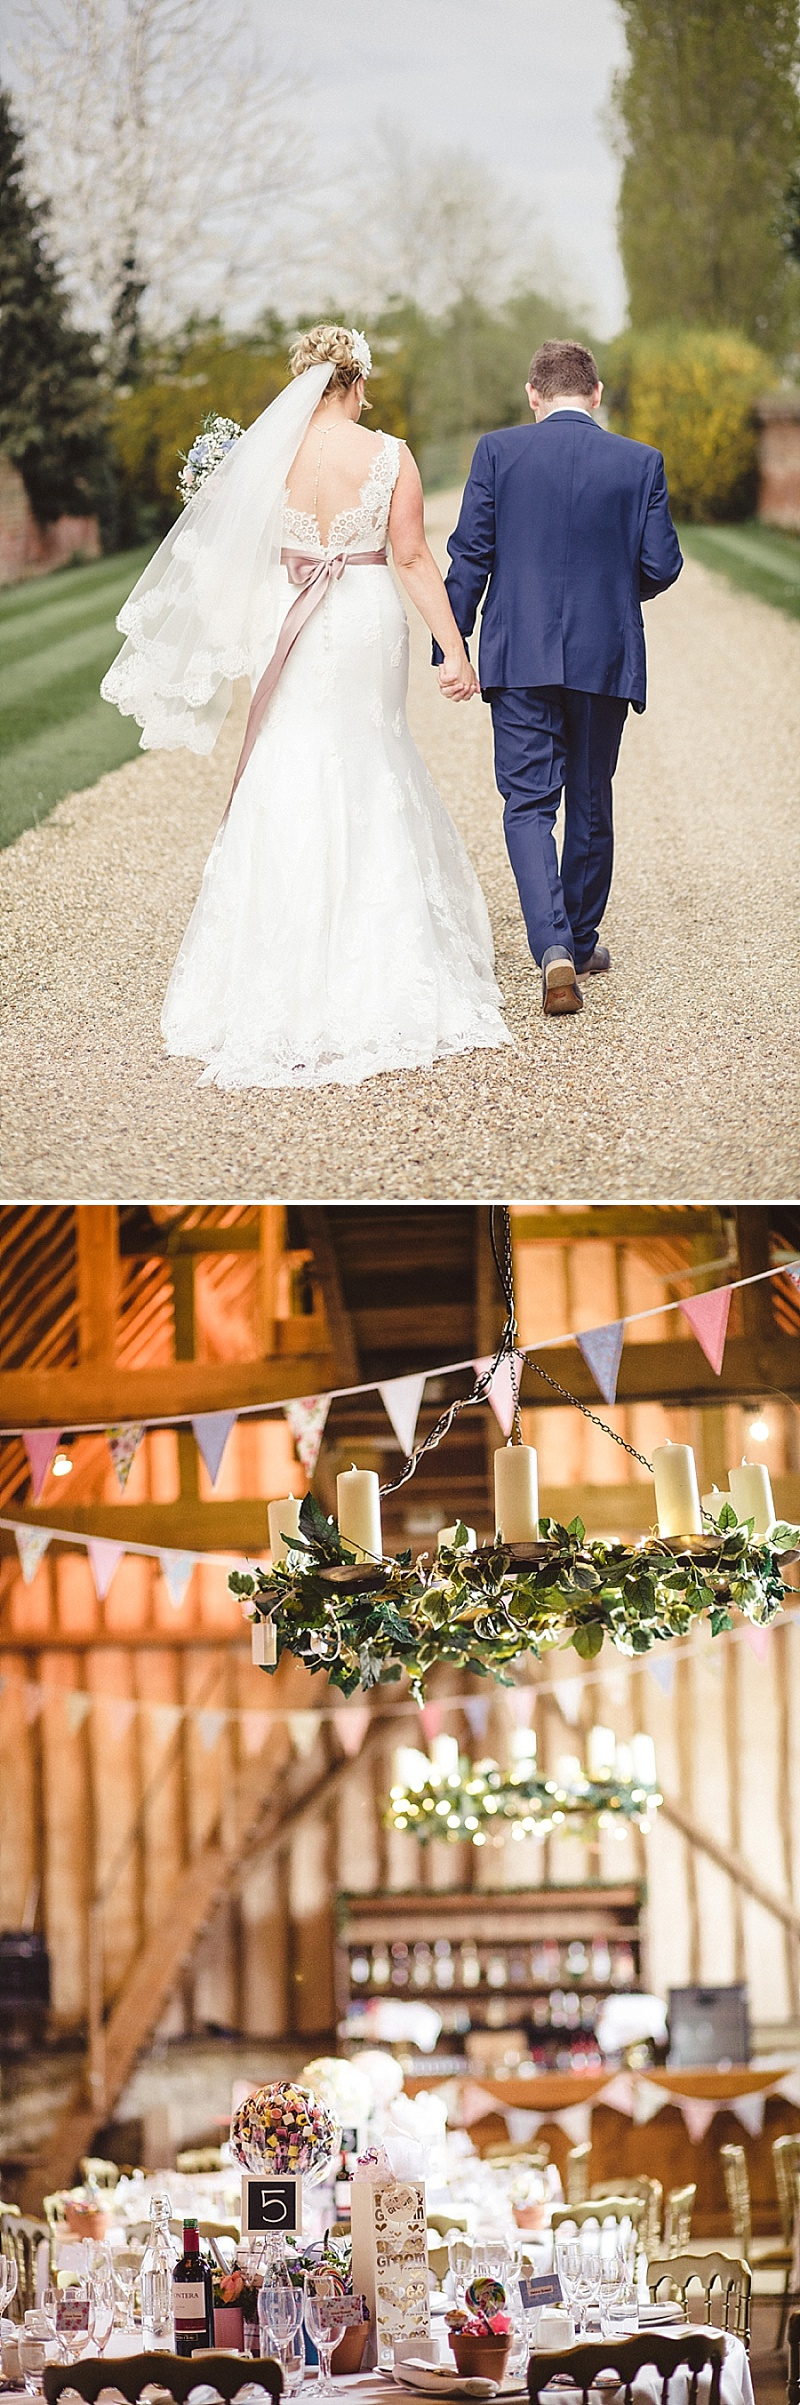 Rustic Wedding With A Baby Pink And Blue Colour Scheme At Lillibrooke Manor In Maidenhead With Bride In Essence Of Australia D1367 And Blue Abode Shoes From Dune And Bridesmaids In Dessy With Groom In Suit From Next 10